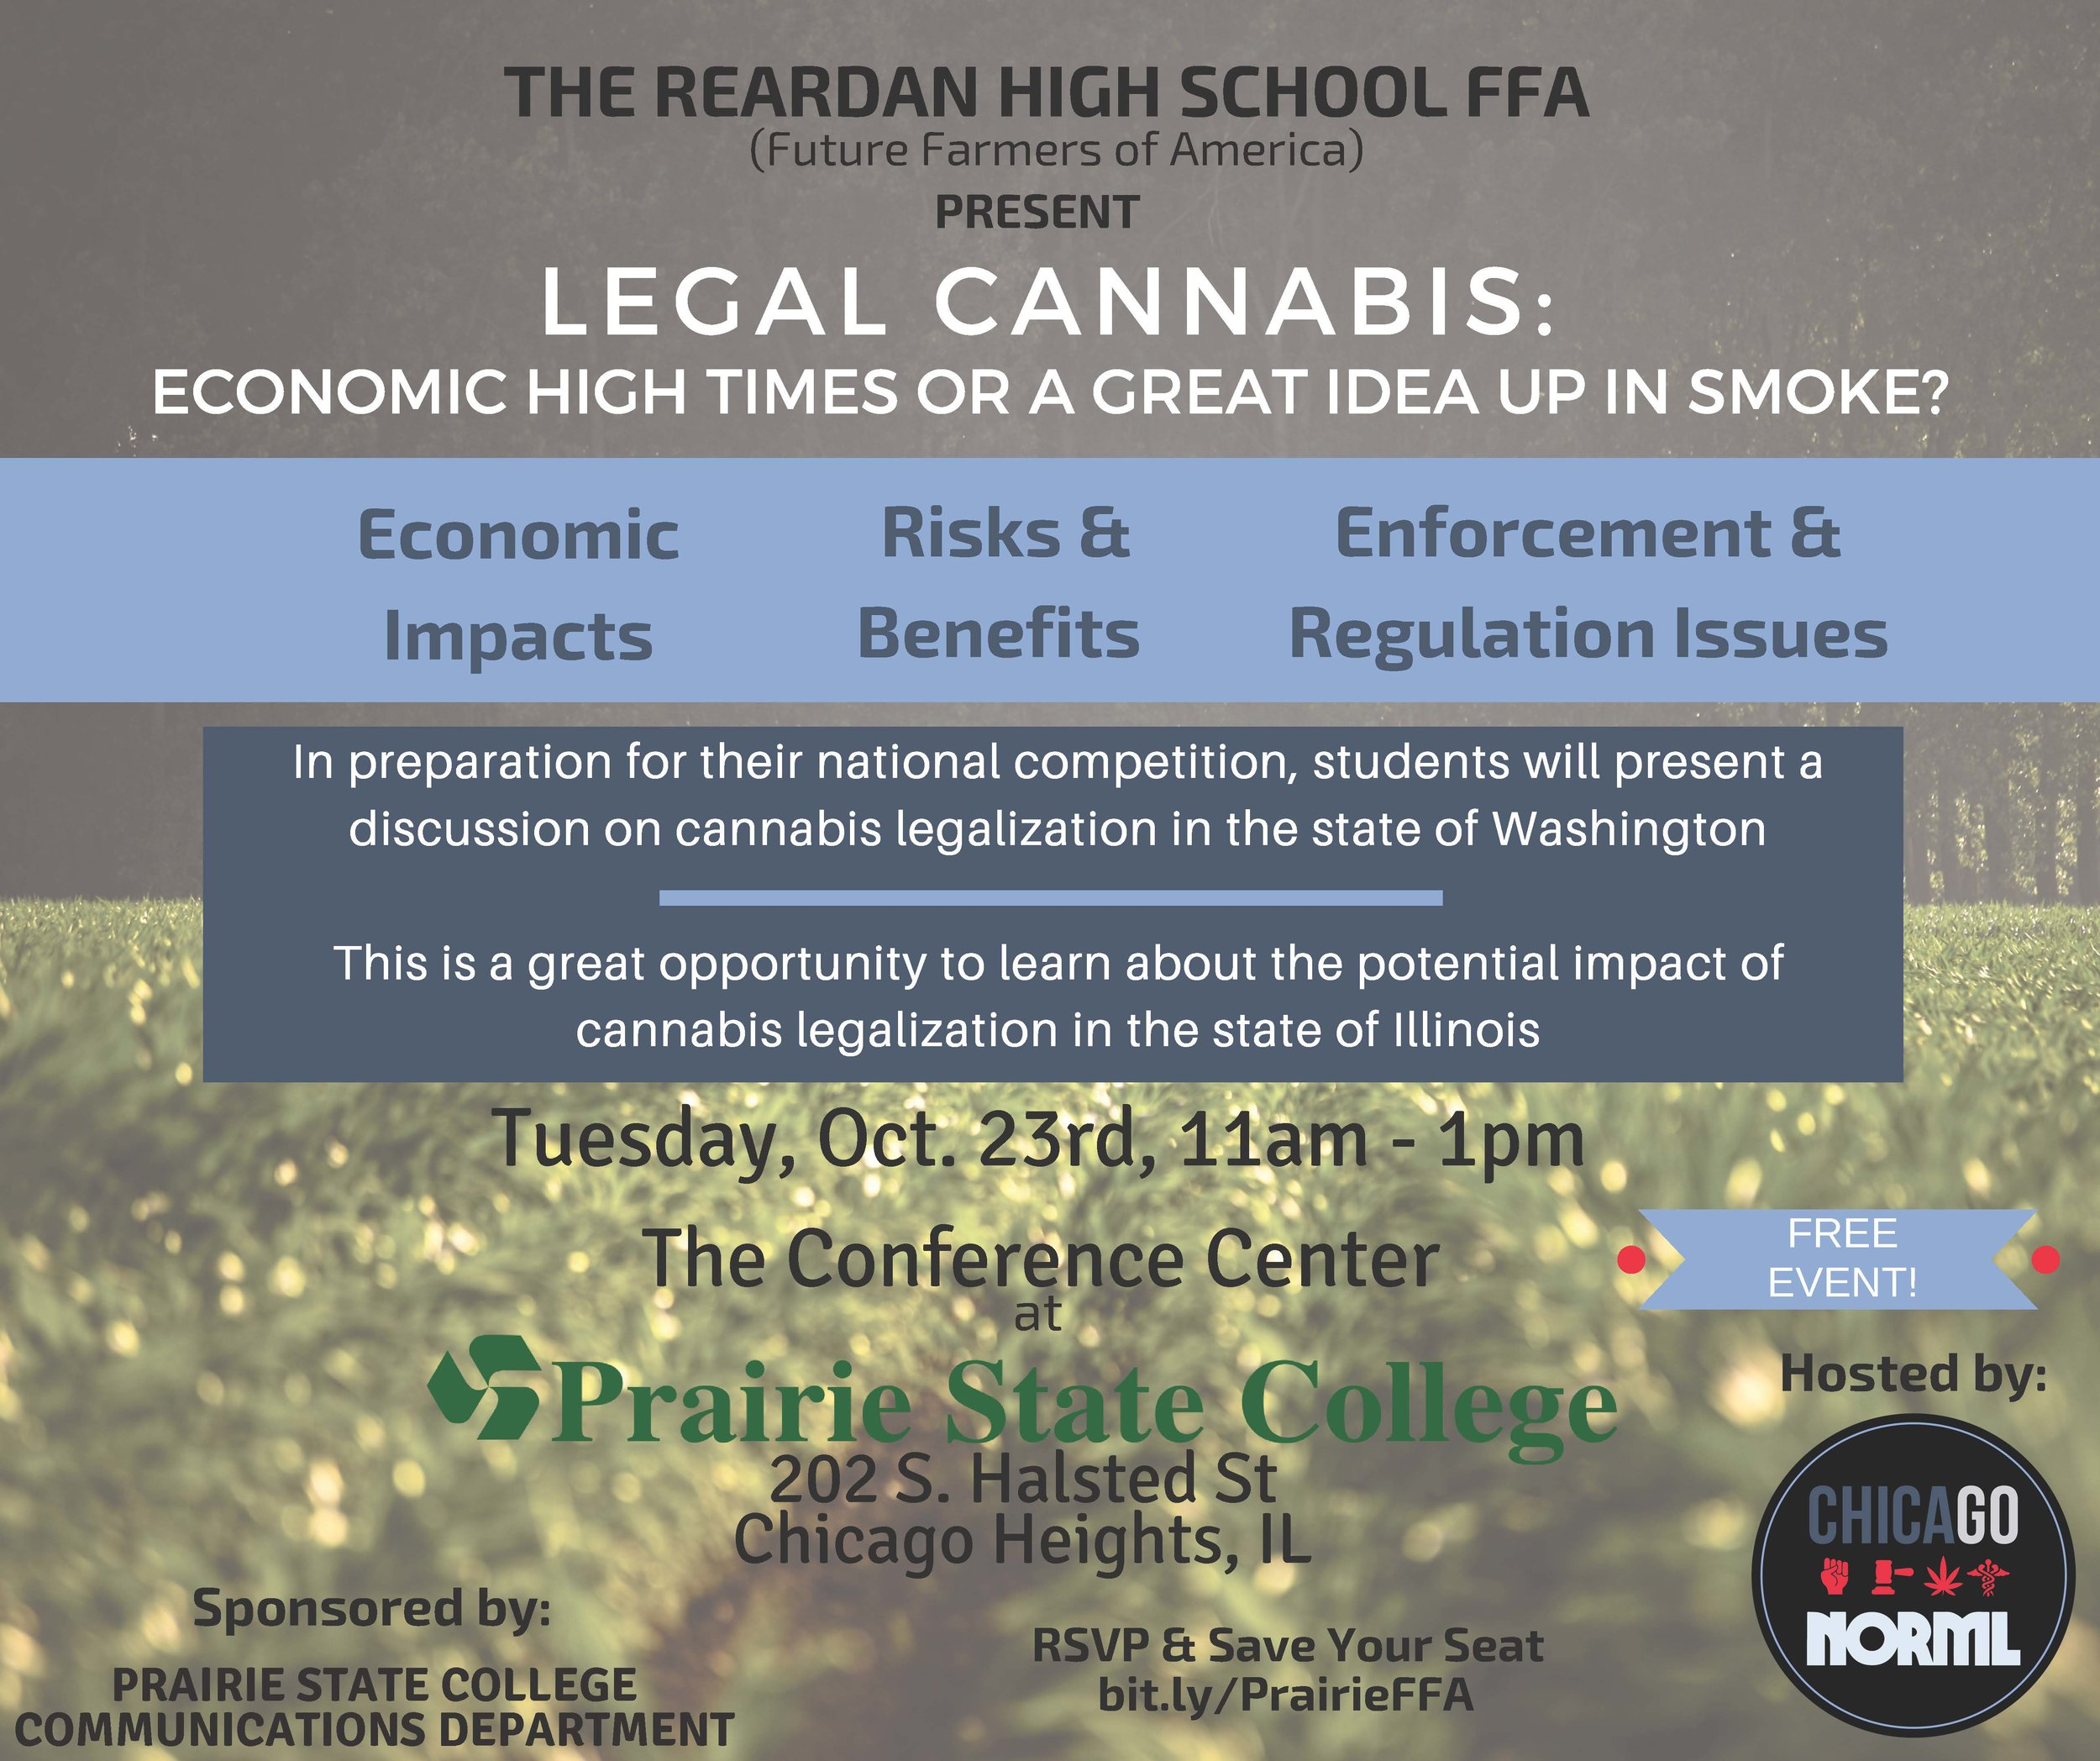 legal cannabis in washington1.jpg